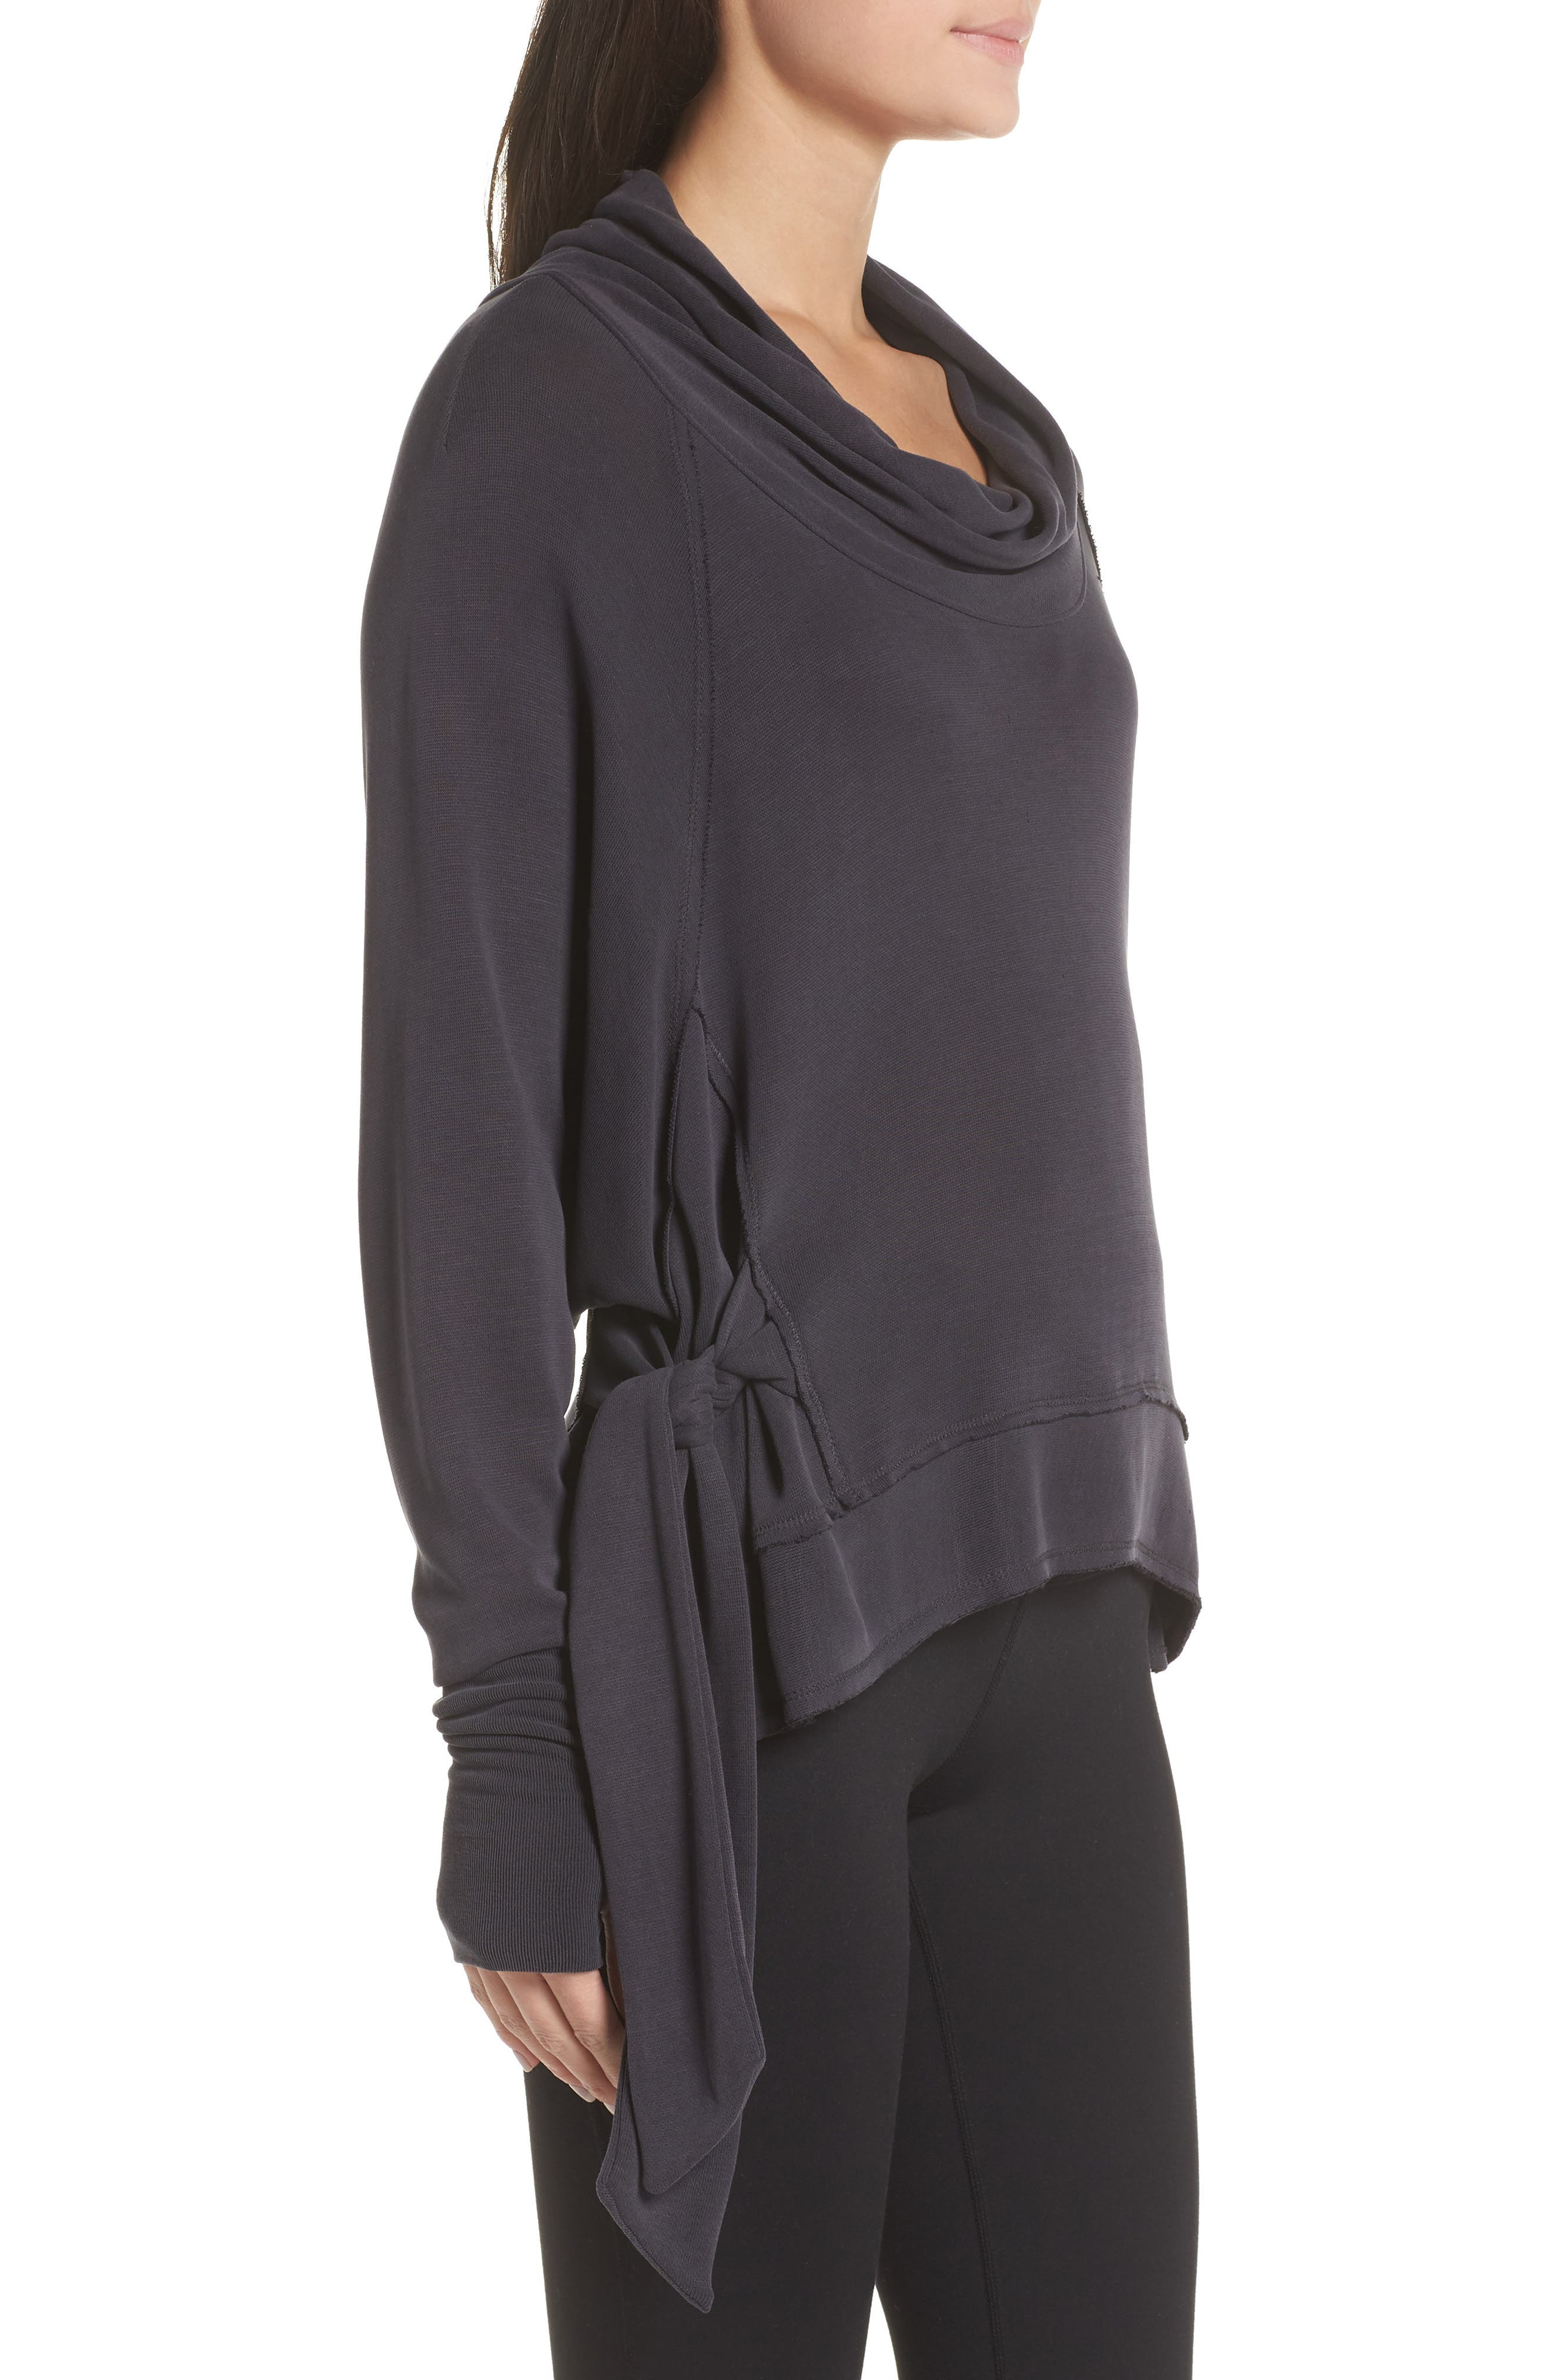 Free People FP Movement Sweet Flow Pullover Sweater,                             Alternate thumbnail 3, color,                             BLACK